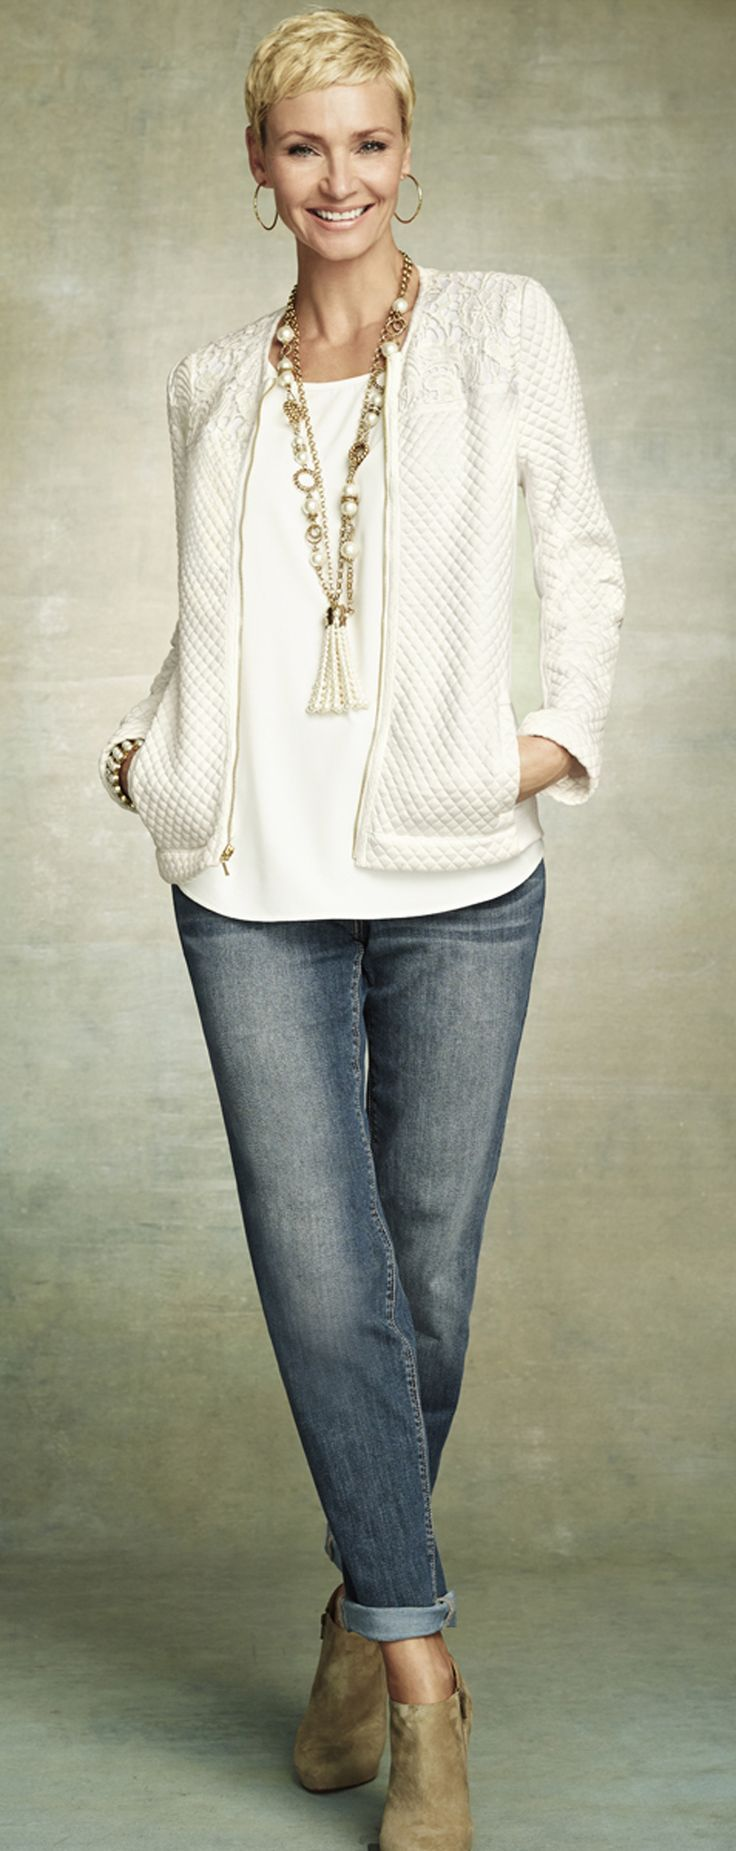 Winter White. Chico's Quilted Pieced Lace Jacket. Women